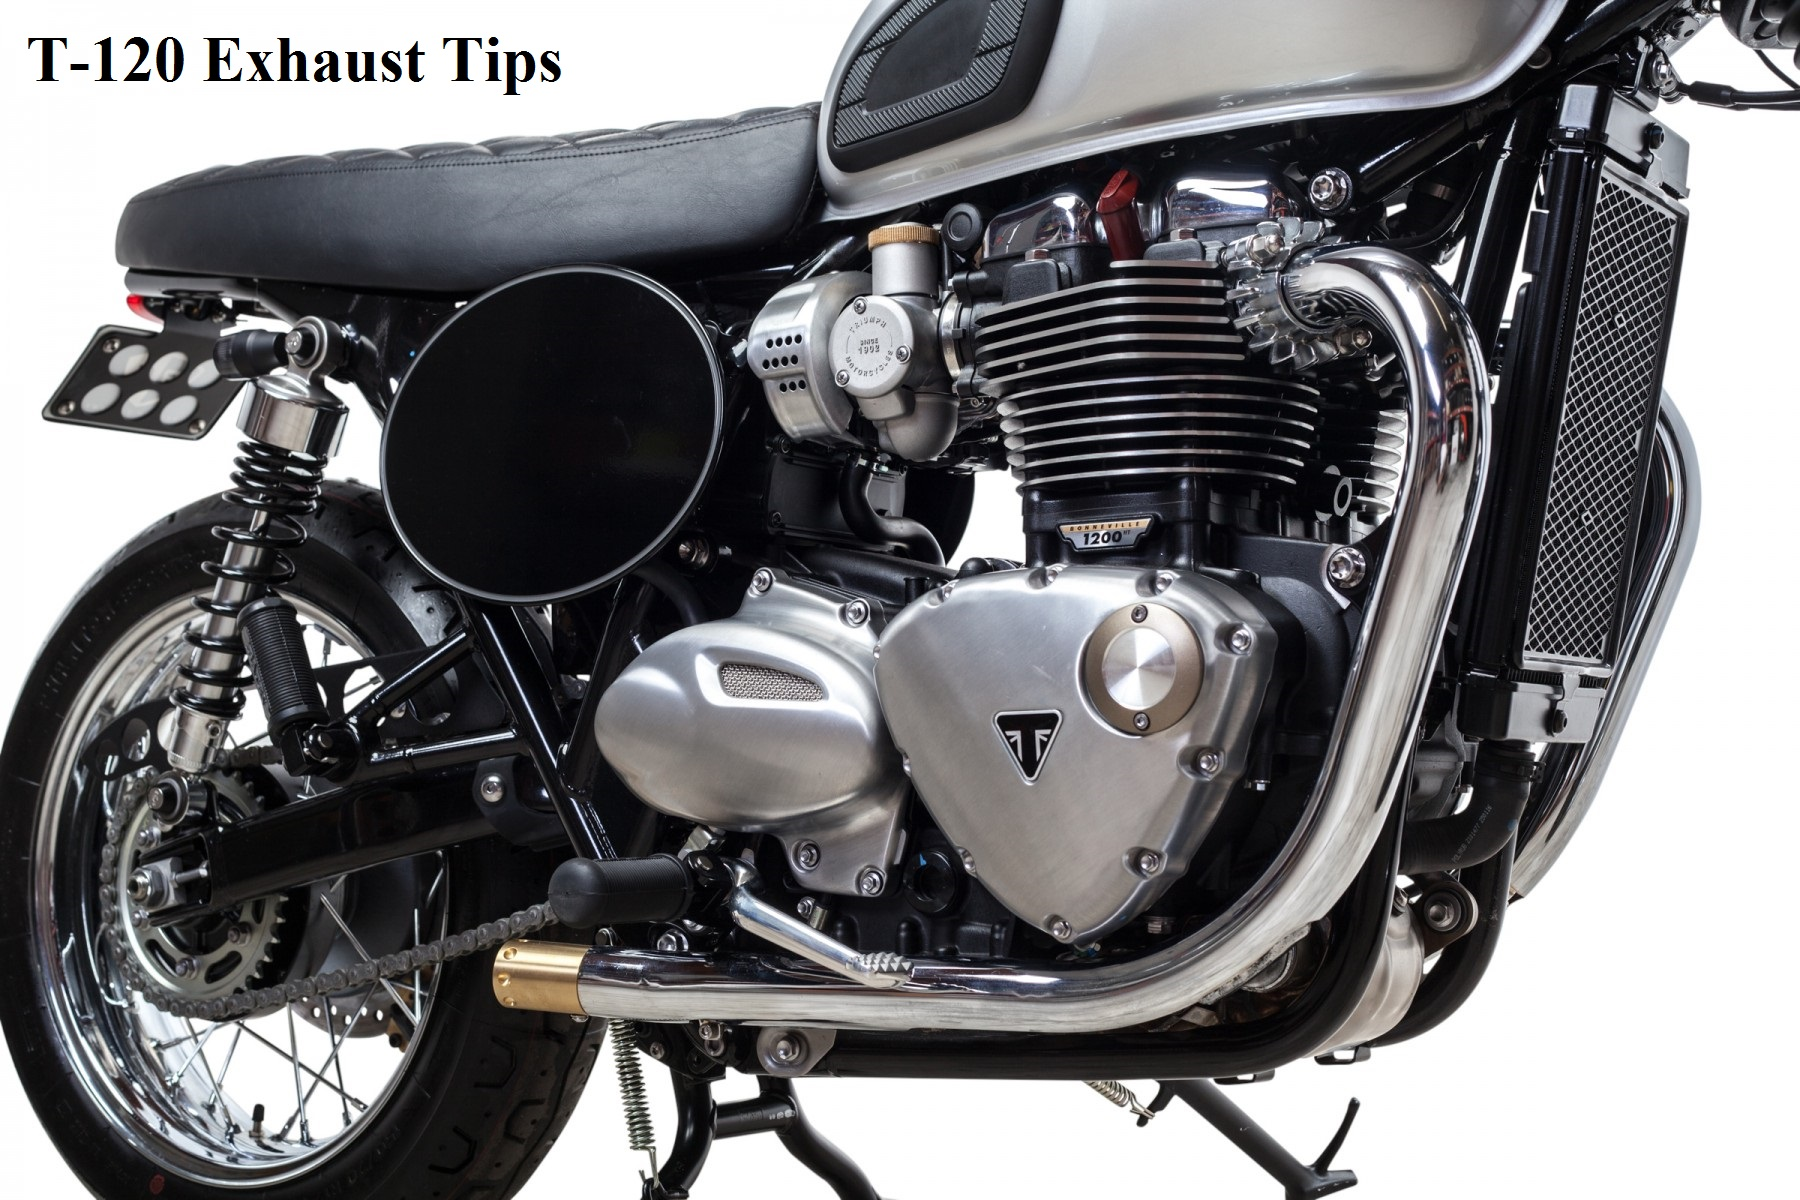 EXHAUST TIPS FOR T120 | BRUSHED